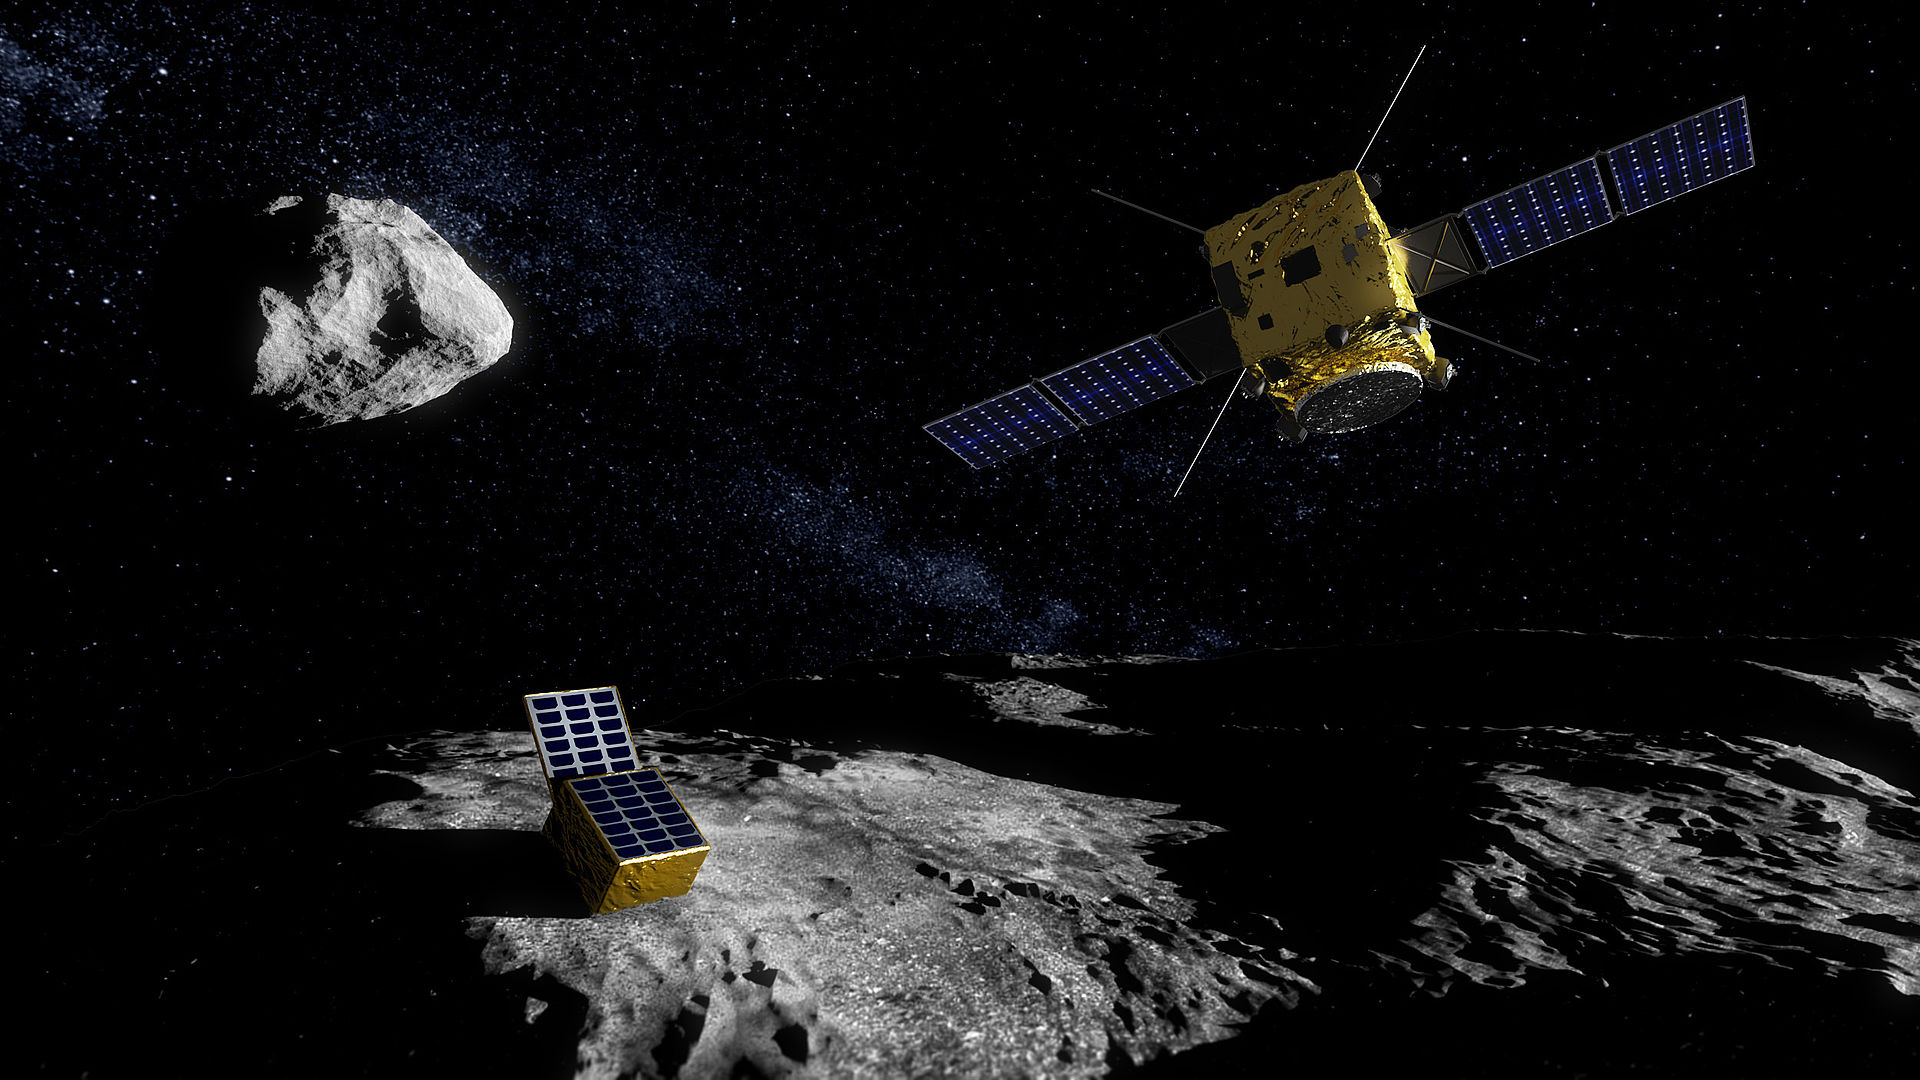 Dangers from space - How we can protect ourselves from asteroid impacts